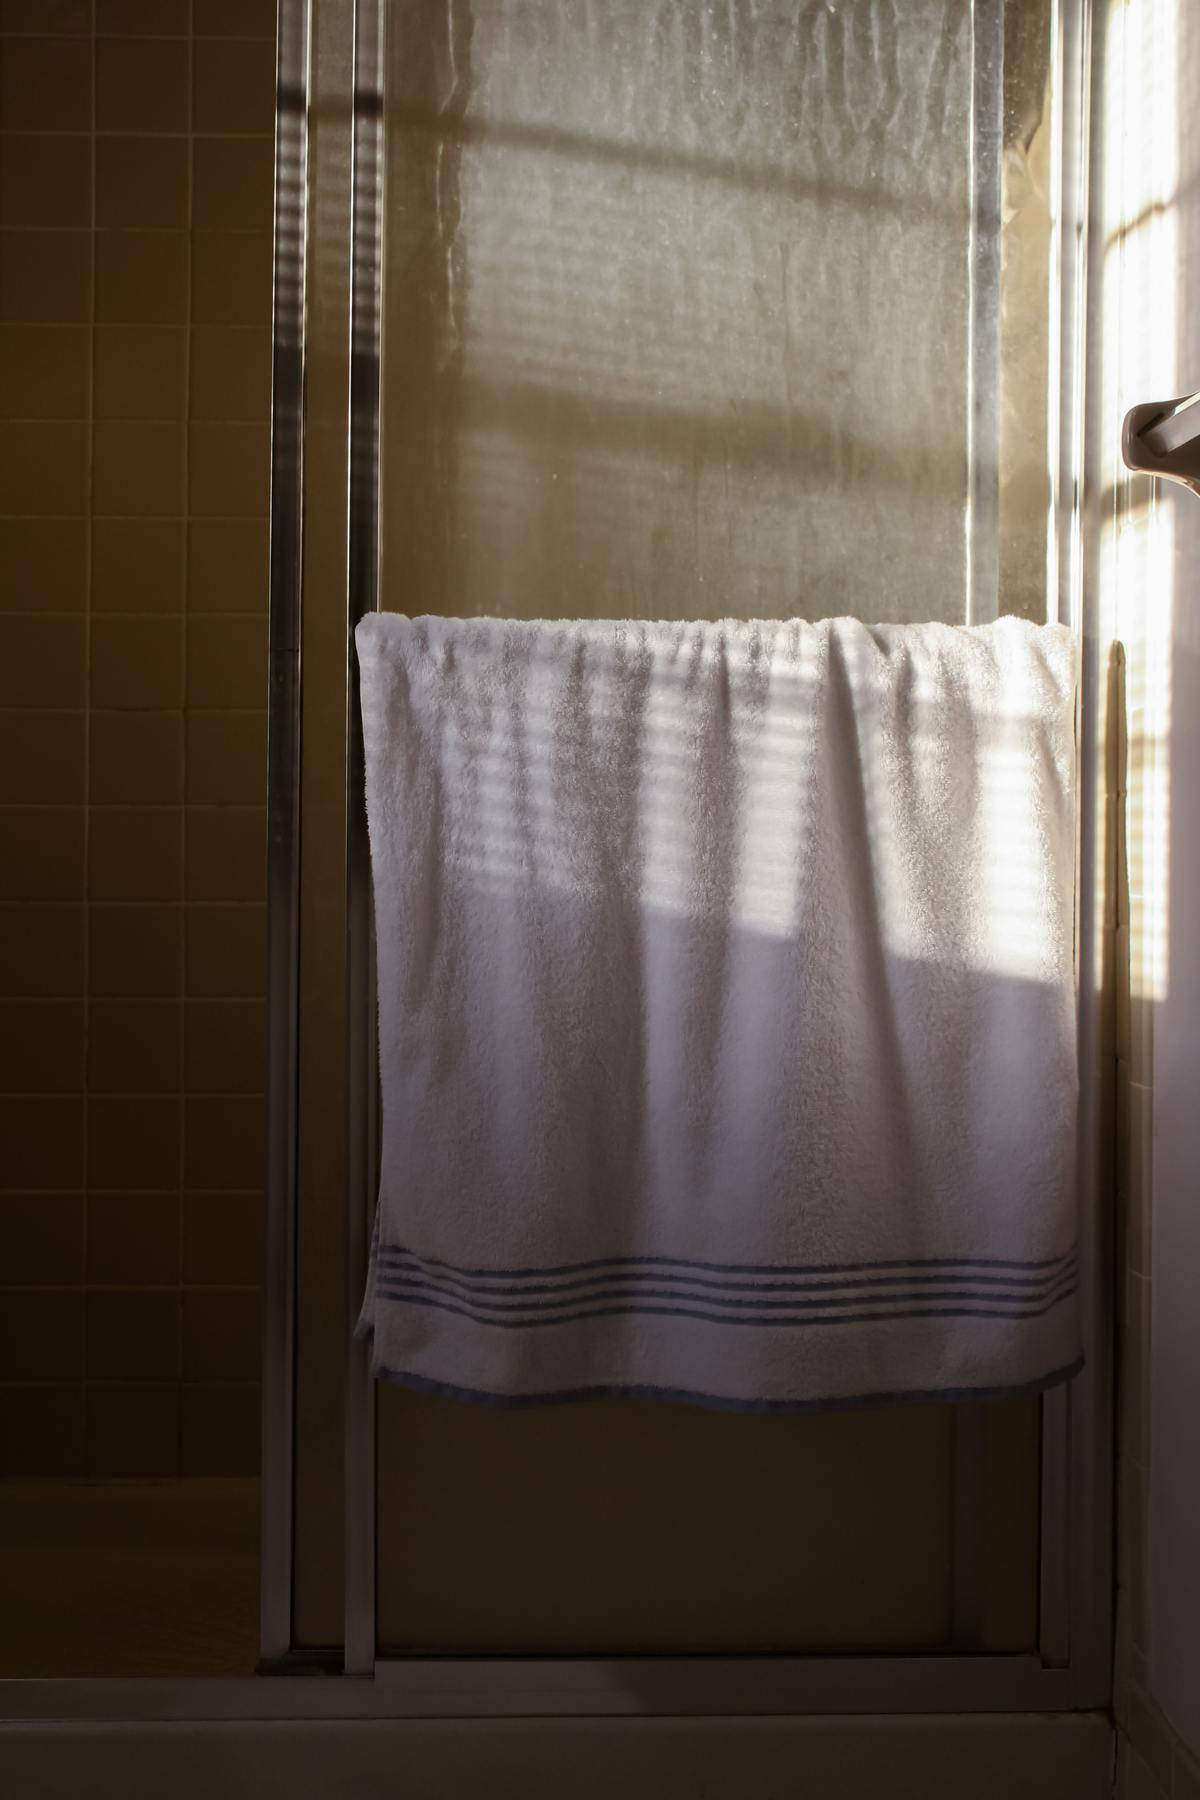 towel hanging on handle of shower